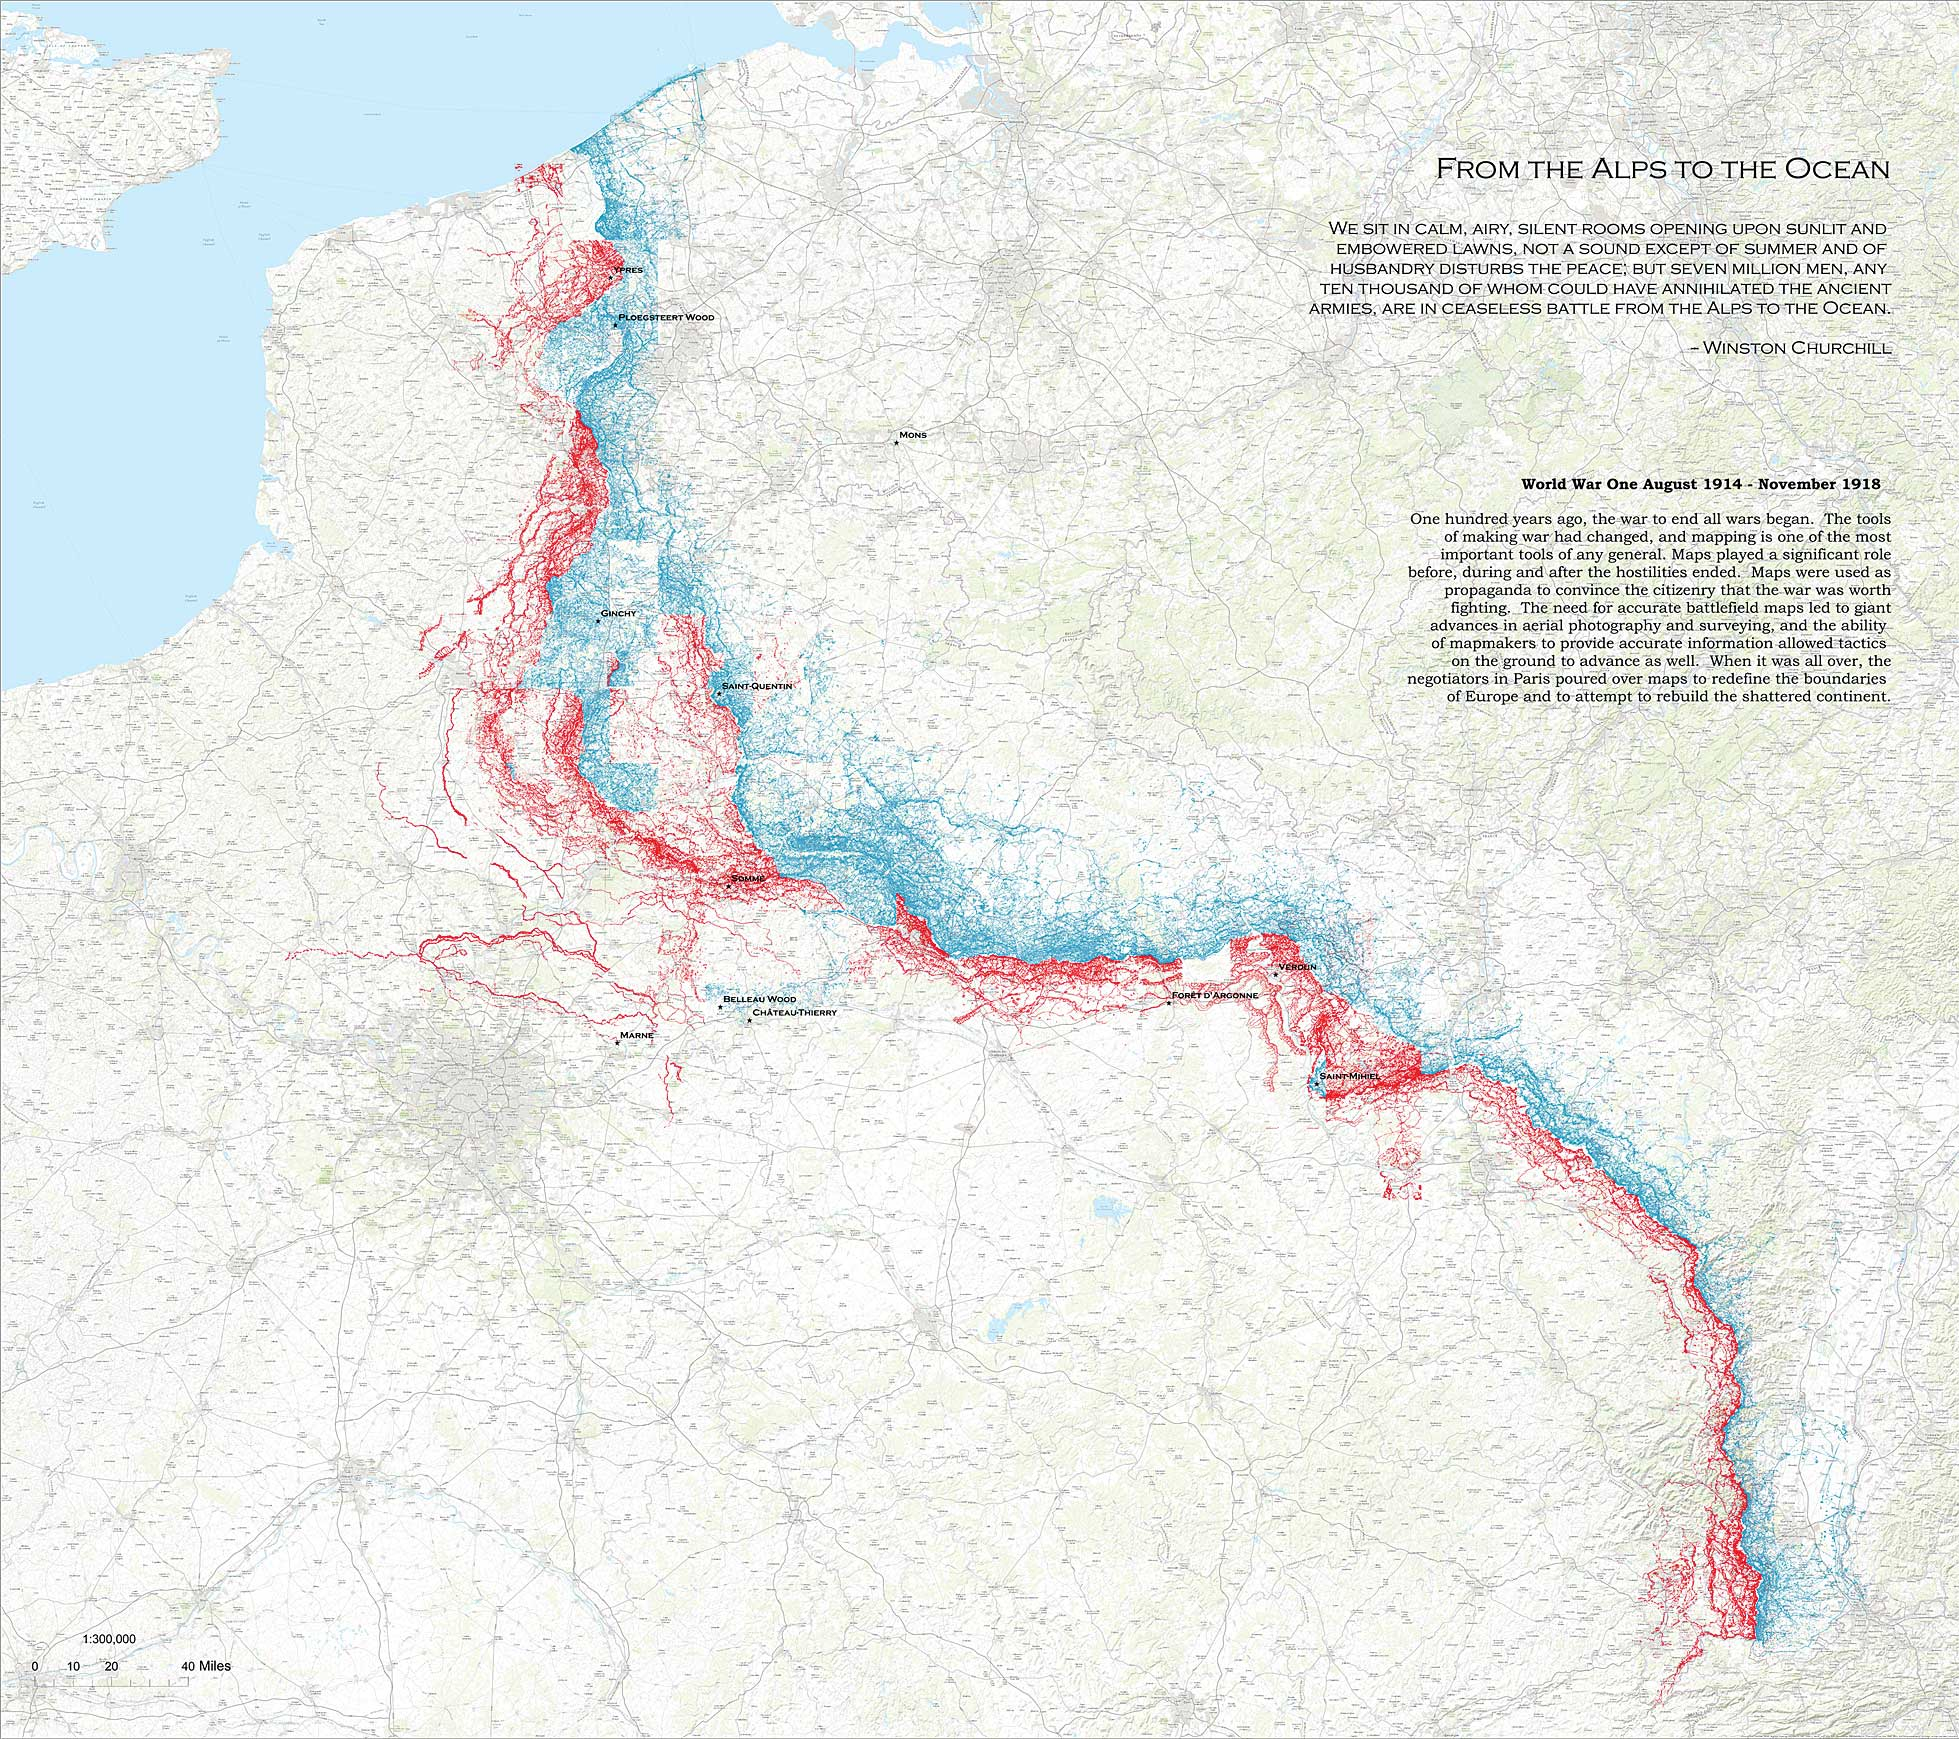 Map showing extent of WW1 trench movement, Aug 1914-Nov 1918 ...